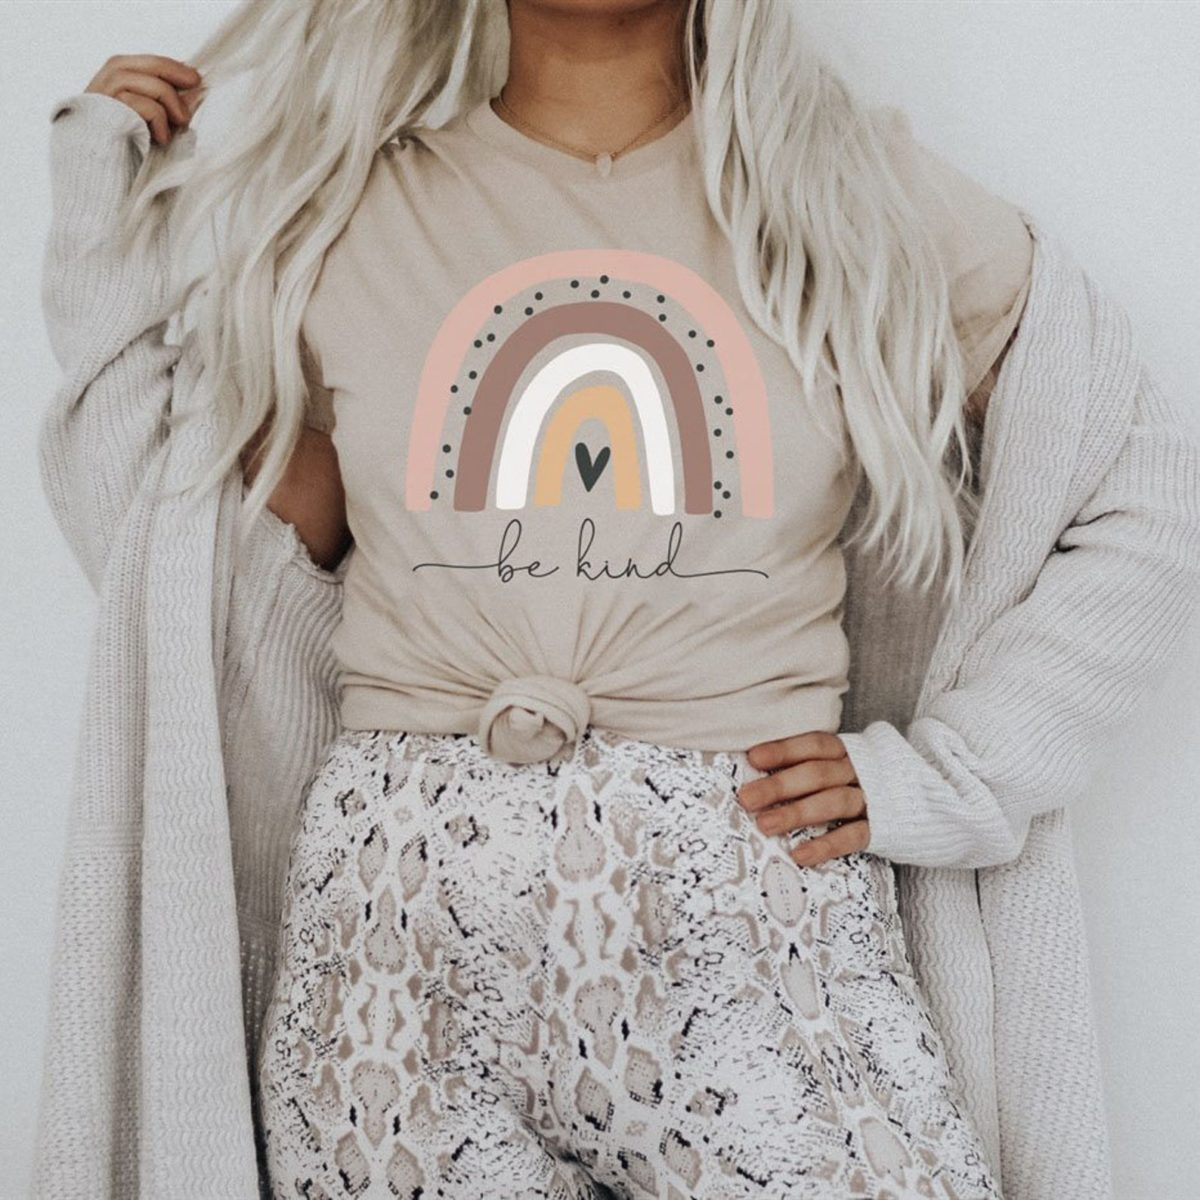 26 awesome etsy t-shirts that send a positive message and make great gifts | parenting questions | mamas uncut il 1588xn.2754449954 gva6